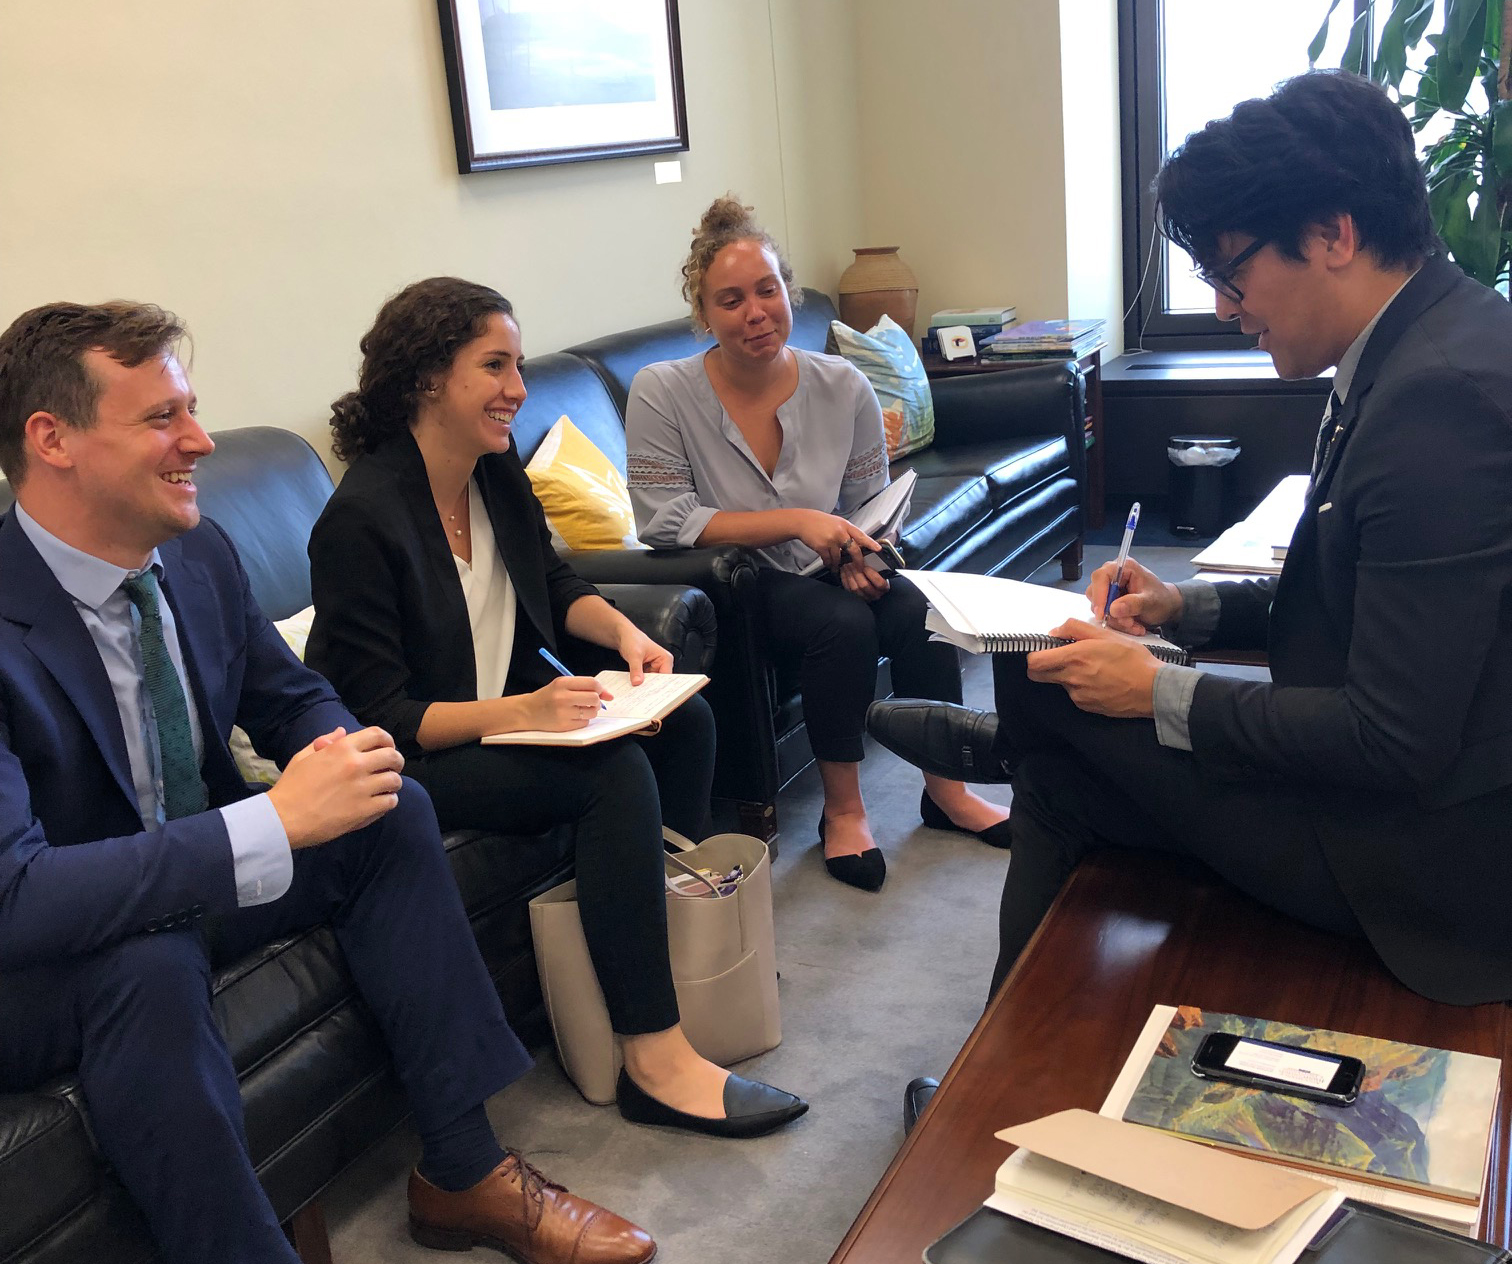 (L-R) Matt Cuff and Andrea Solis Canto met with staff members from the office of Senator Brian Schatz (D-HI) earlier this month (photo by Jenny Smulson, AJCU)